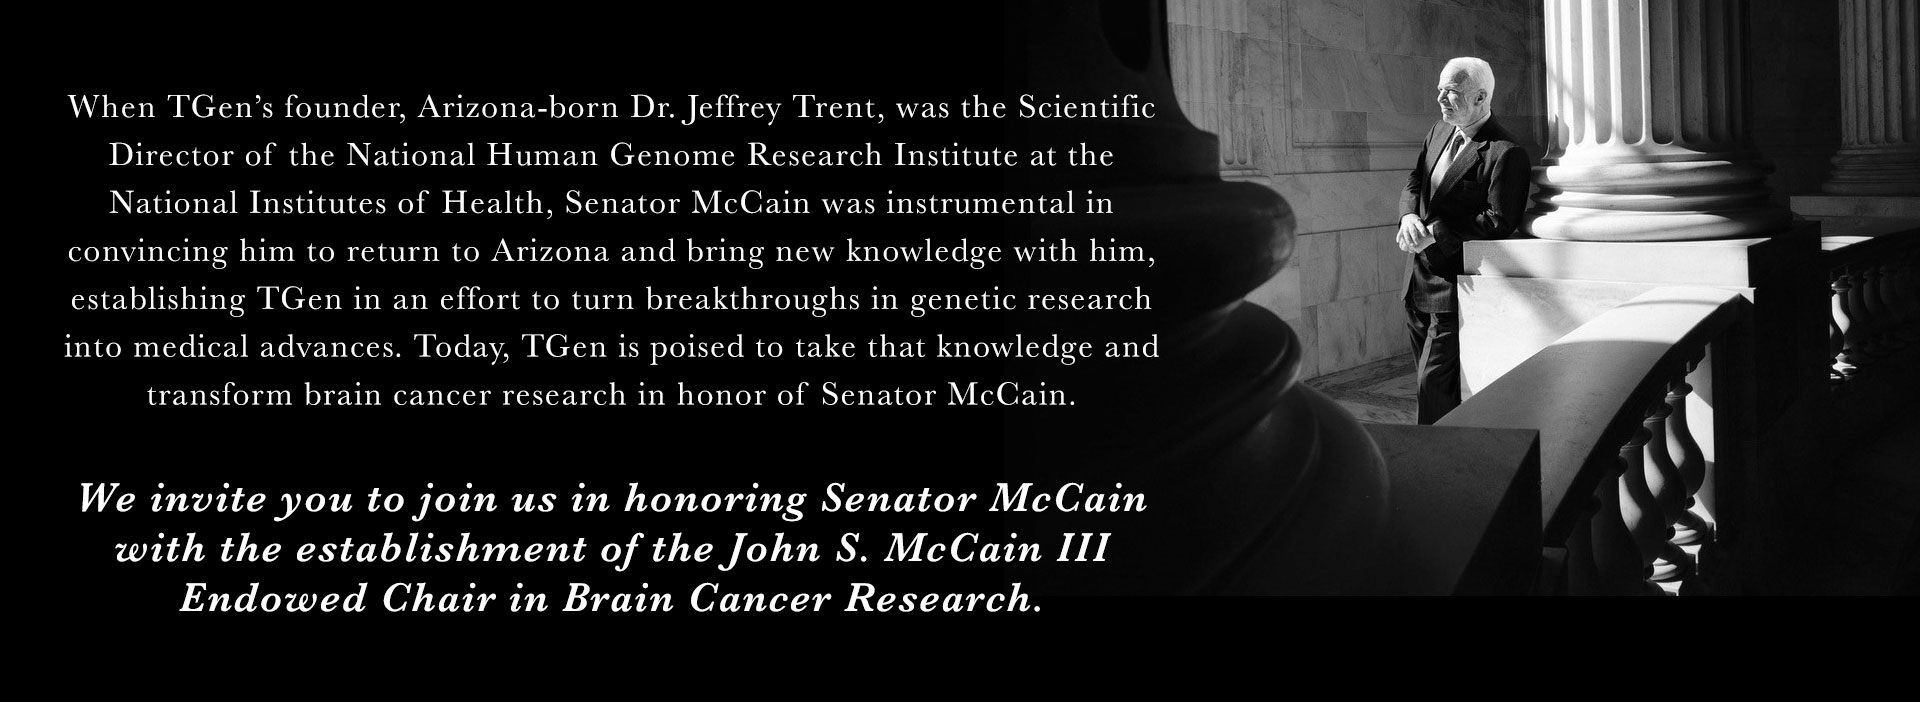 John S. McCain III Endowed Chair in Brain Cancer Research